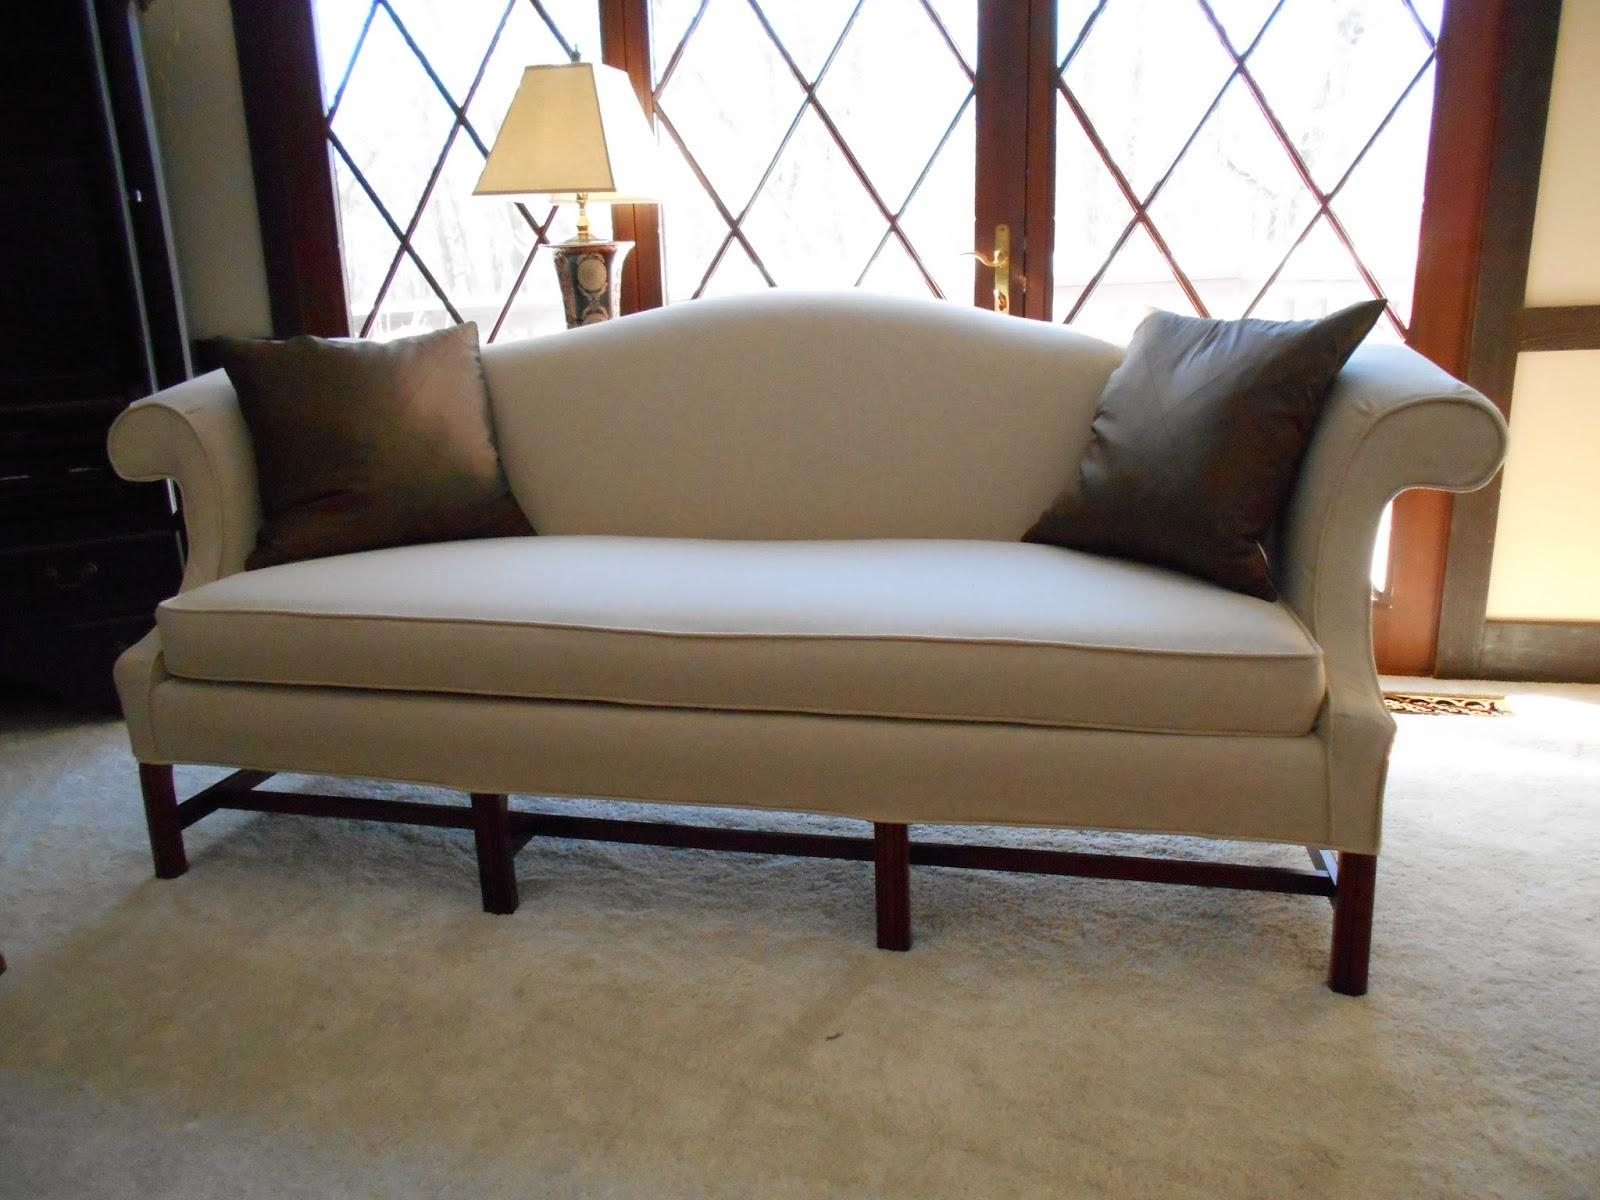 Camel Back Sofa Within Camelback Sofa Slipcovers (View 14 of 19)